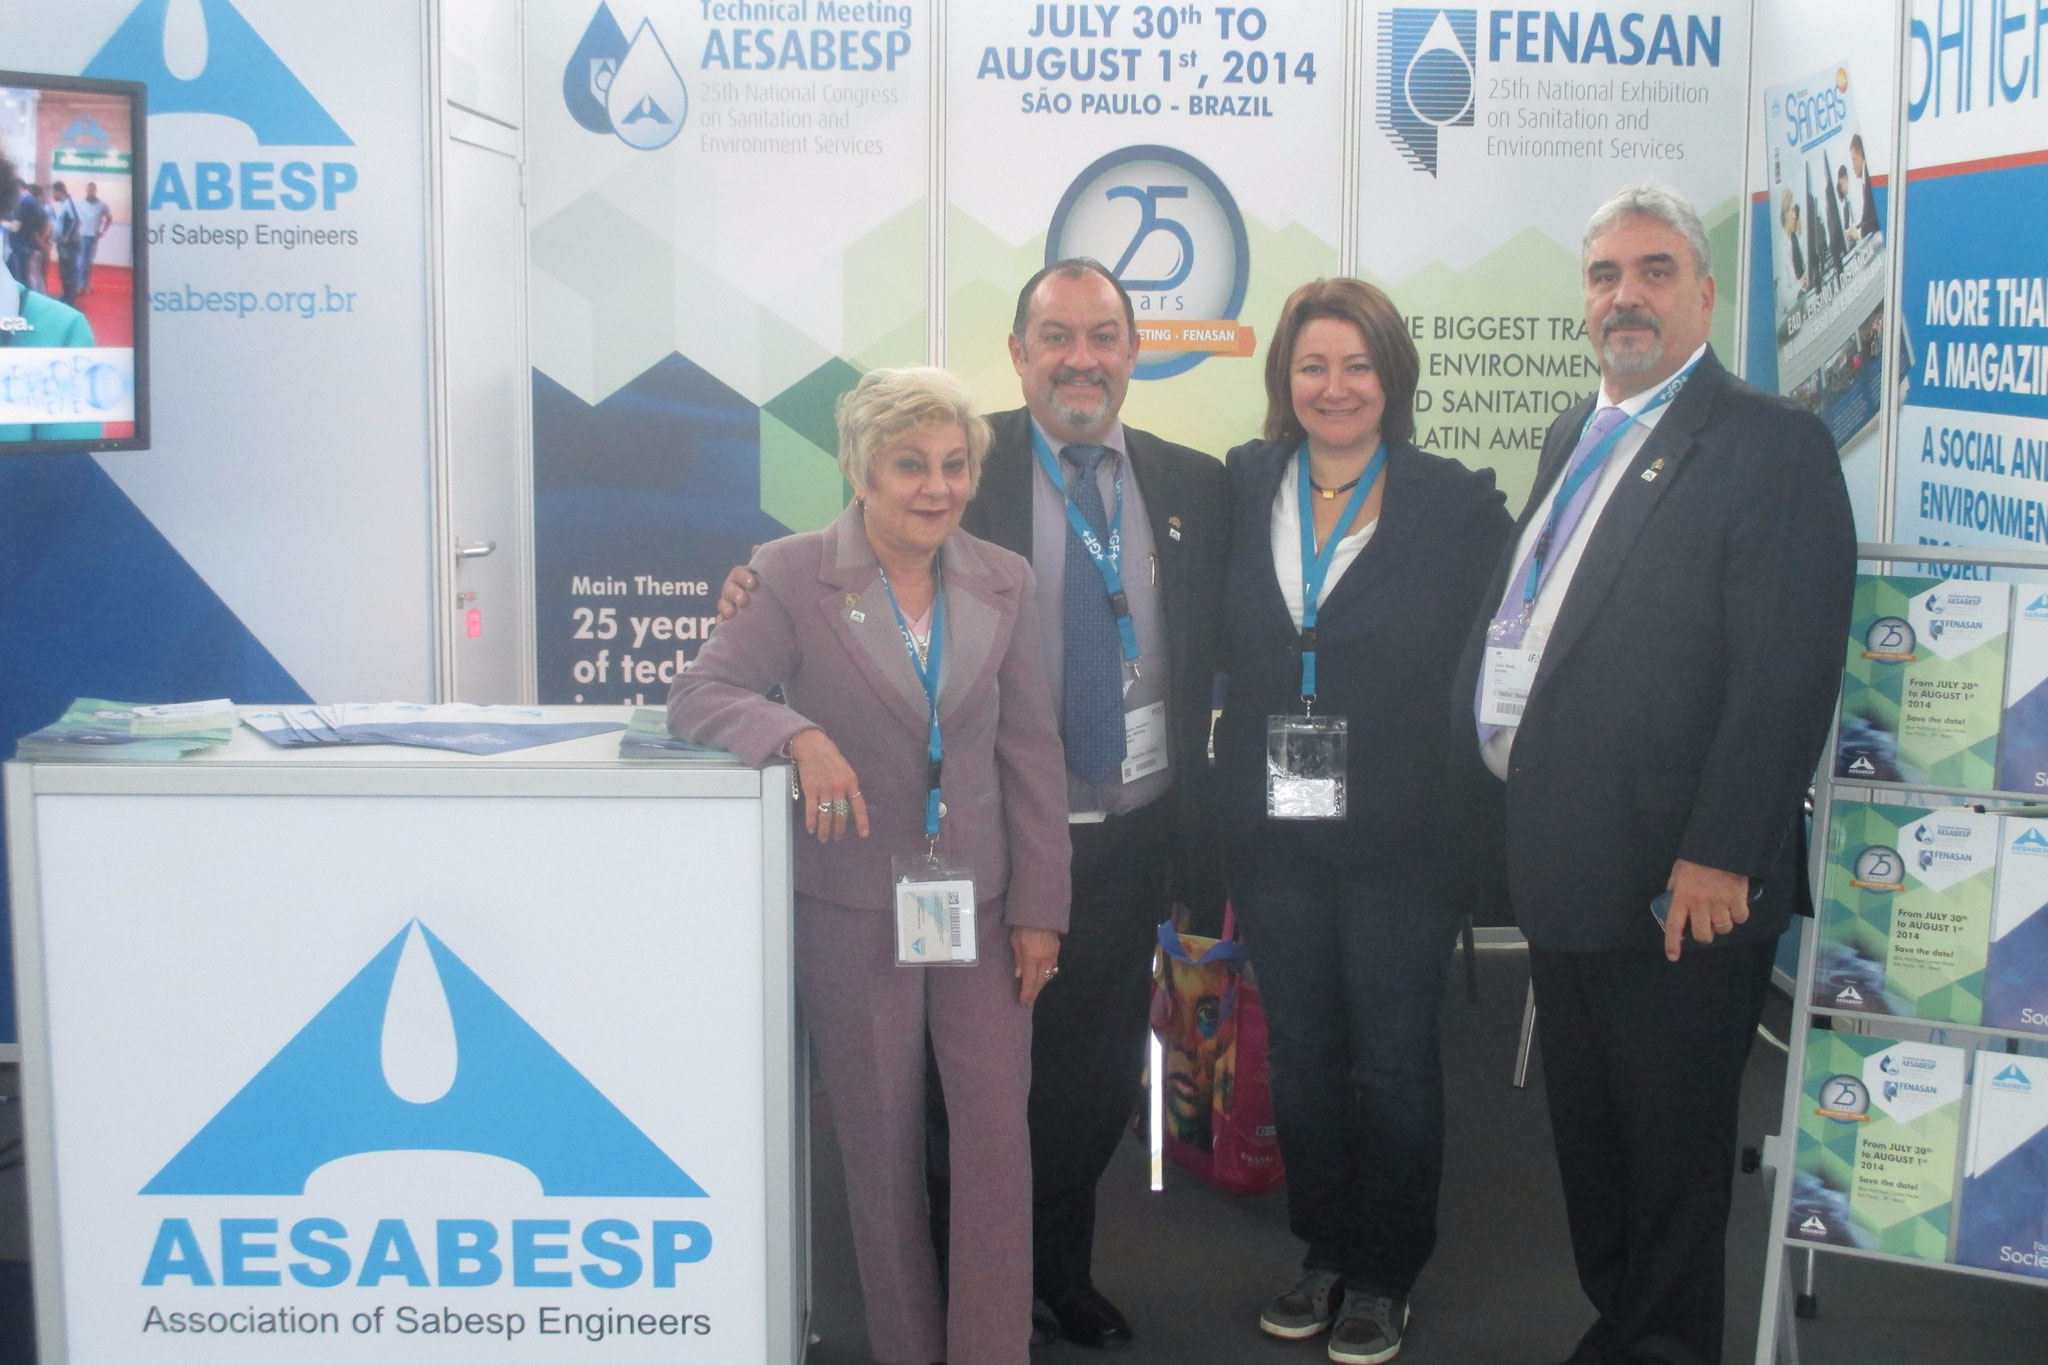 Visiting SABESP's stand at IFAT2014!